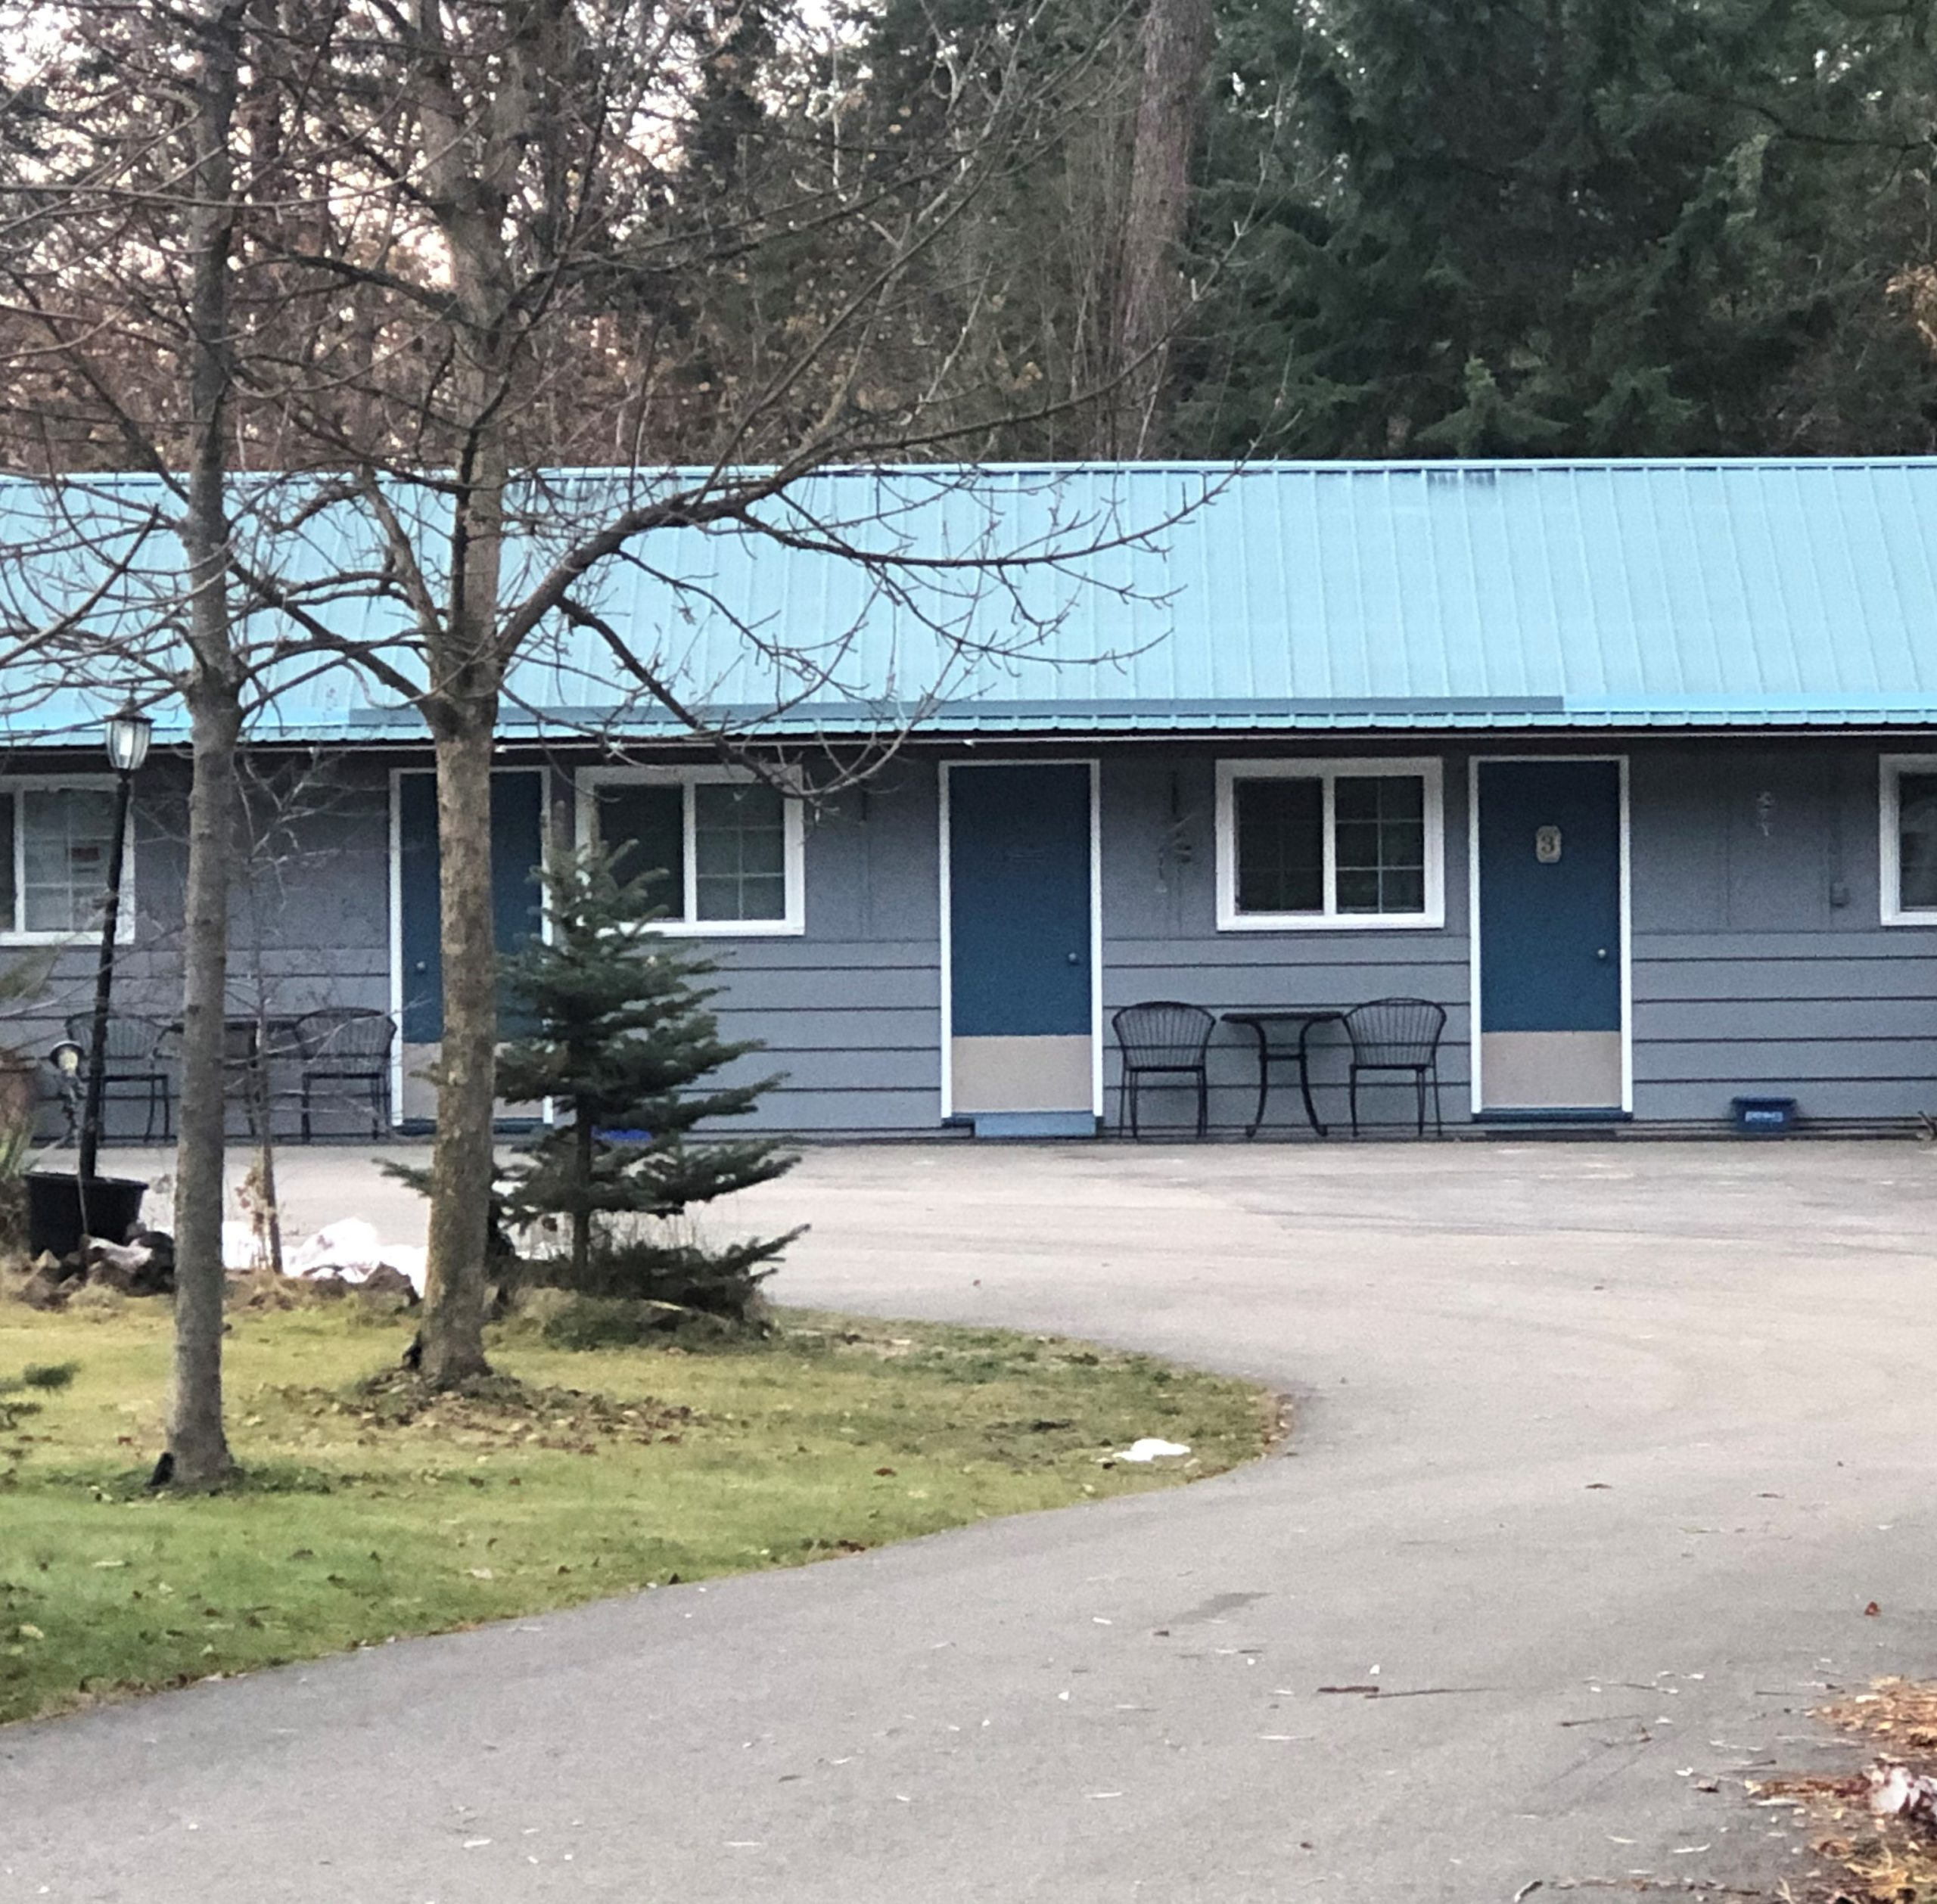 Parklane Motel and RV Resort is a business for sale in BC.